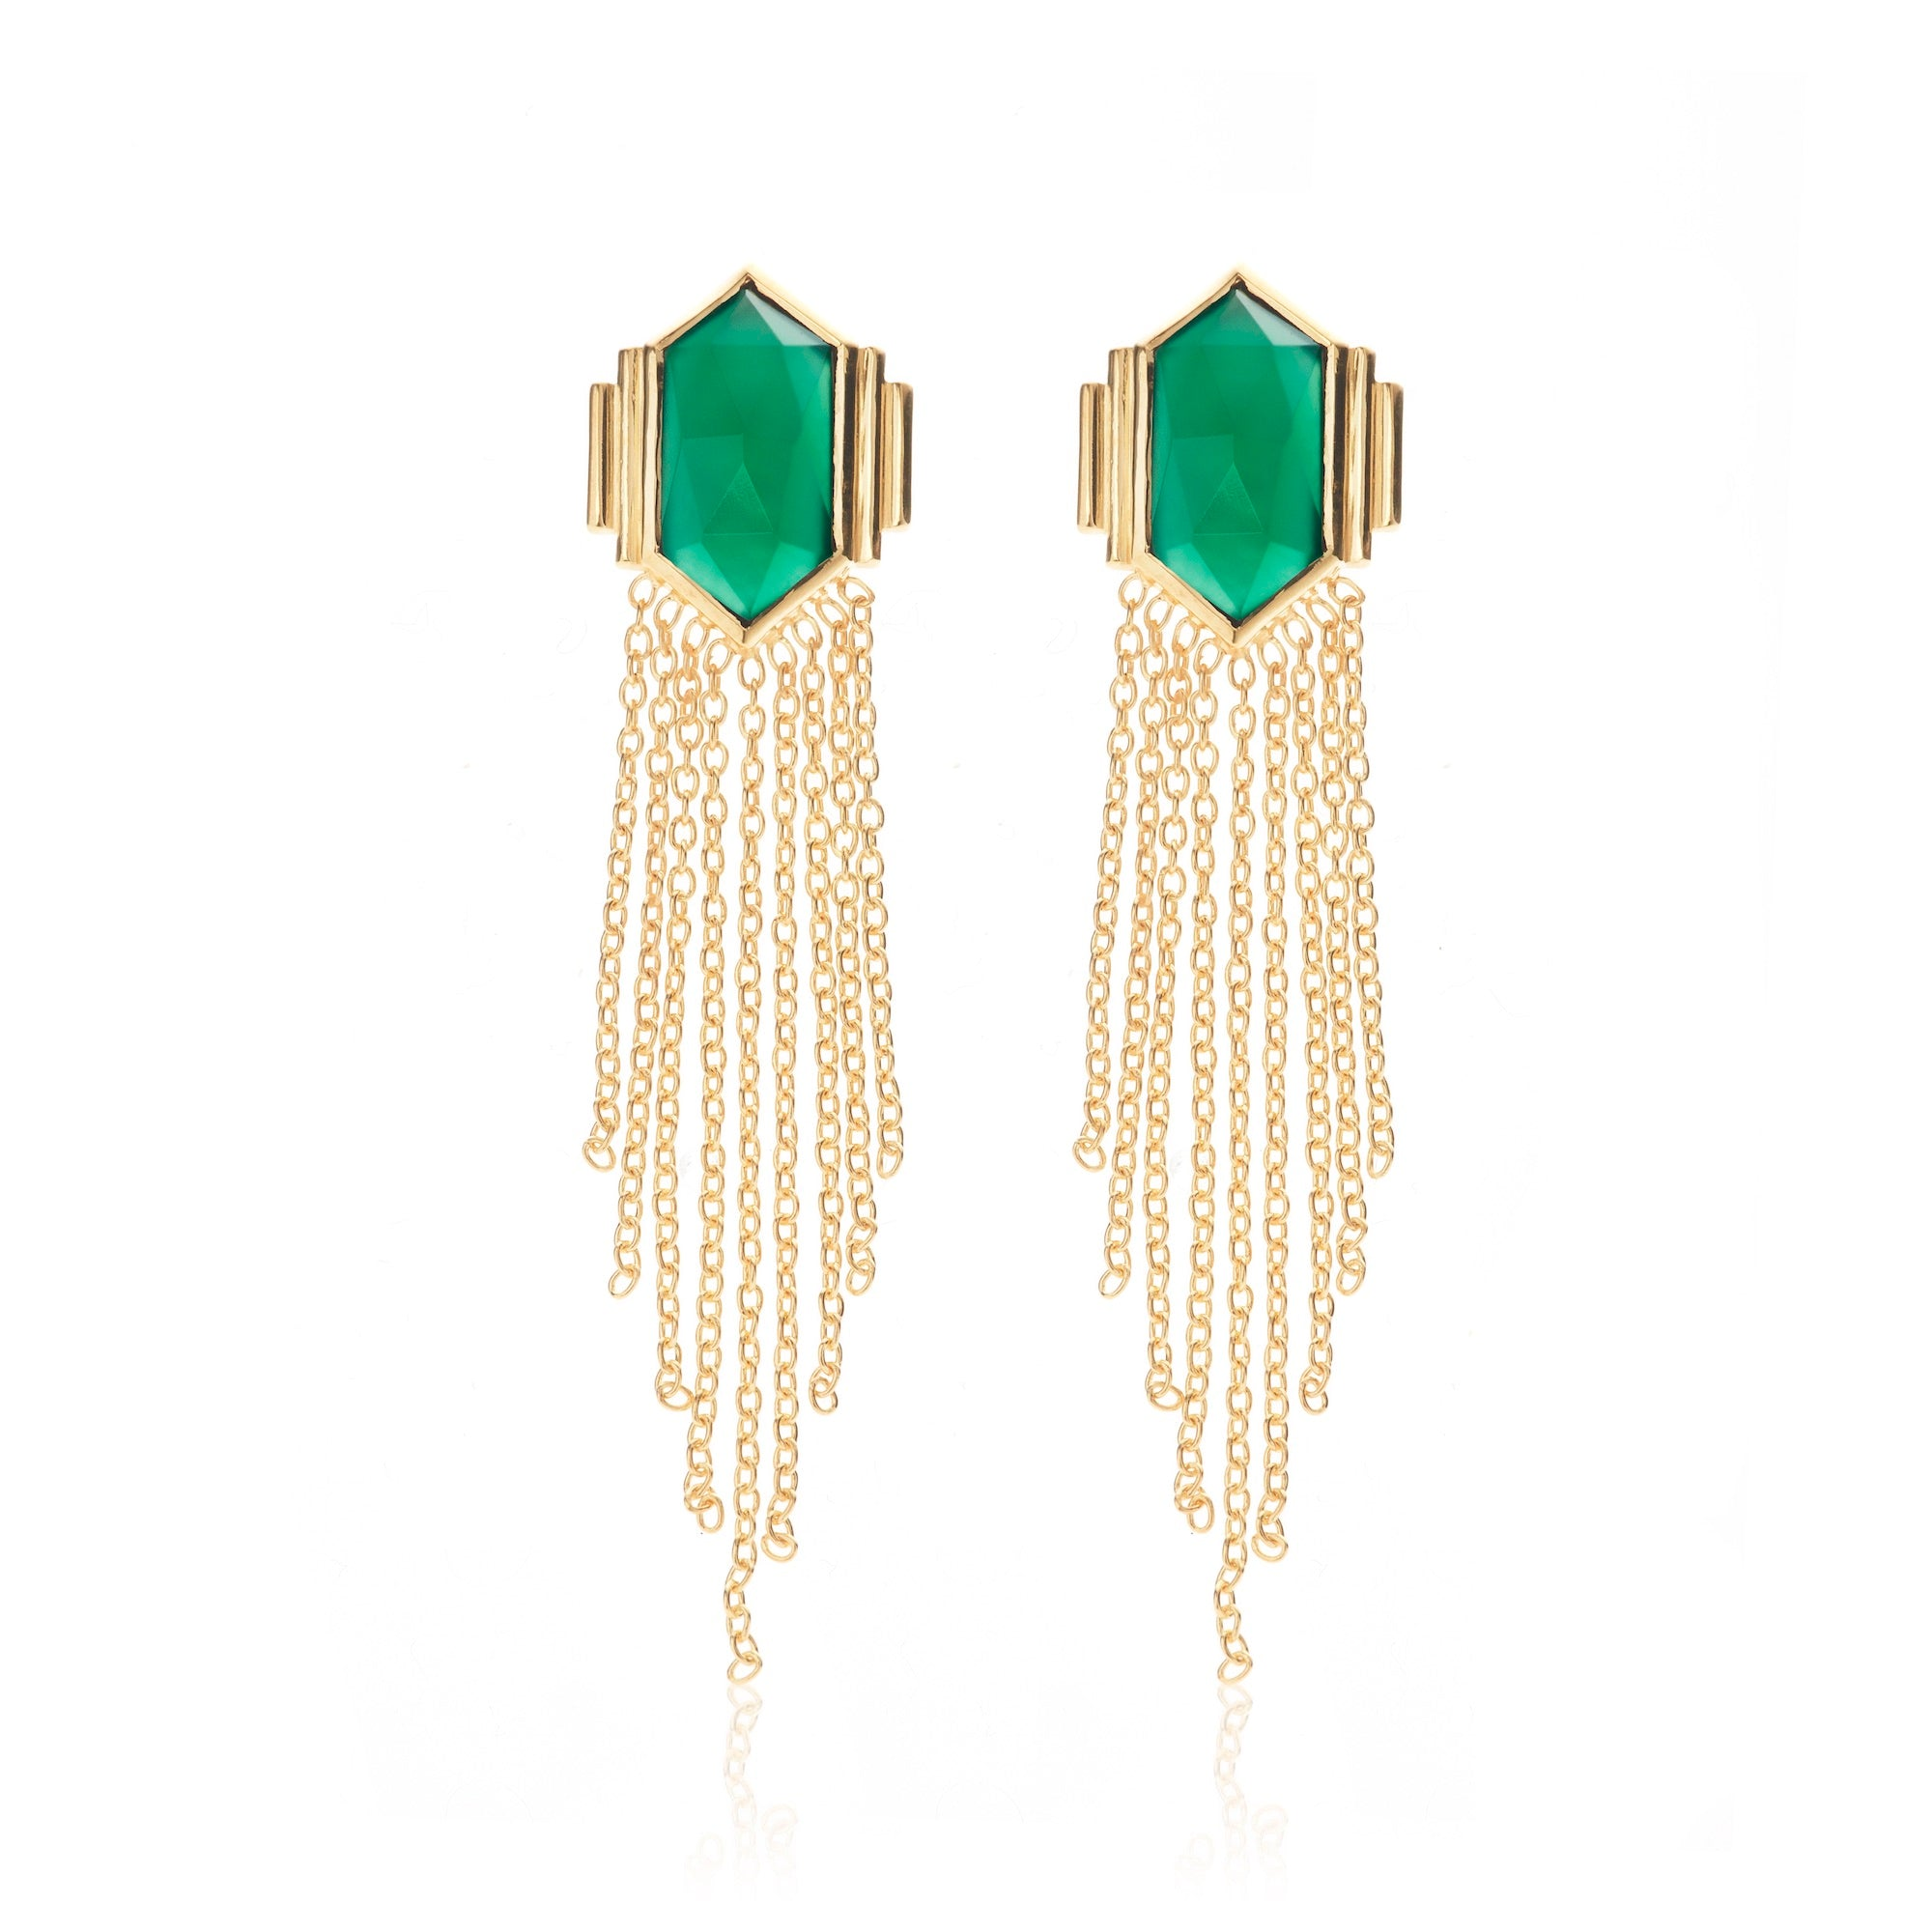 Silk & Steel Jewellery Glamour Fringe Earrings Green Onyx and Gold Plated Sterling Silver